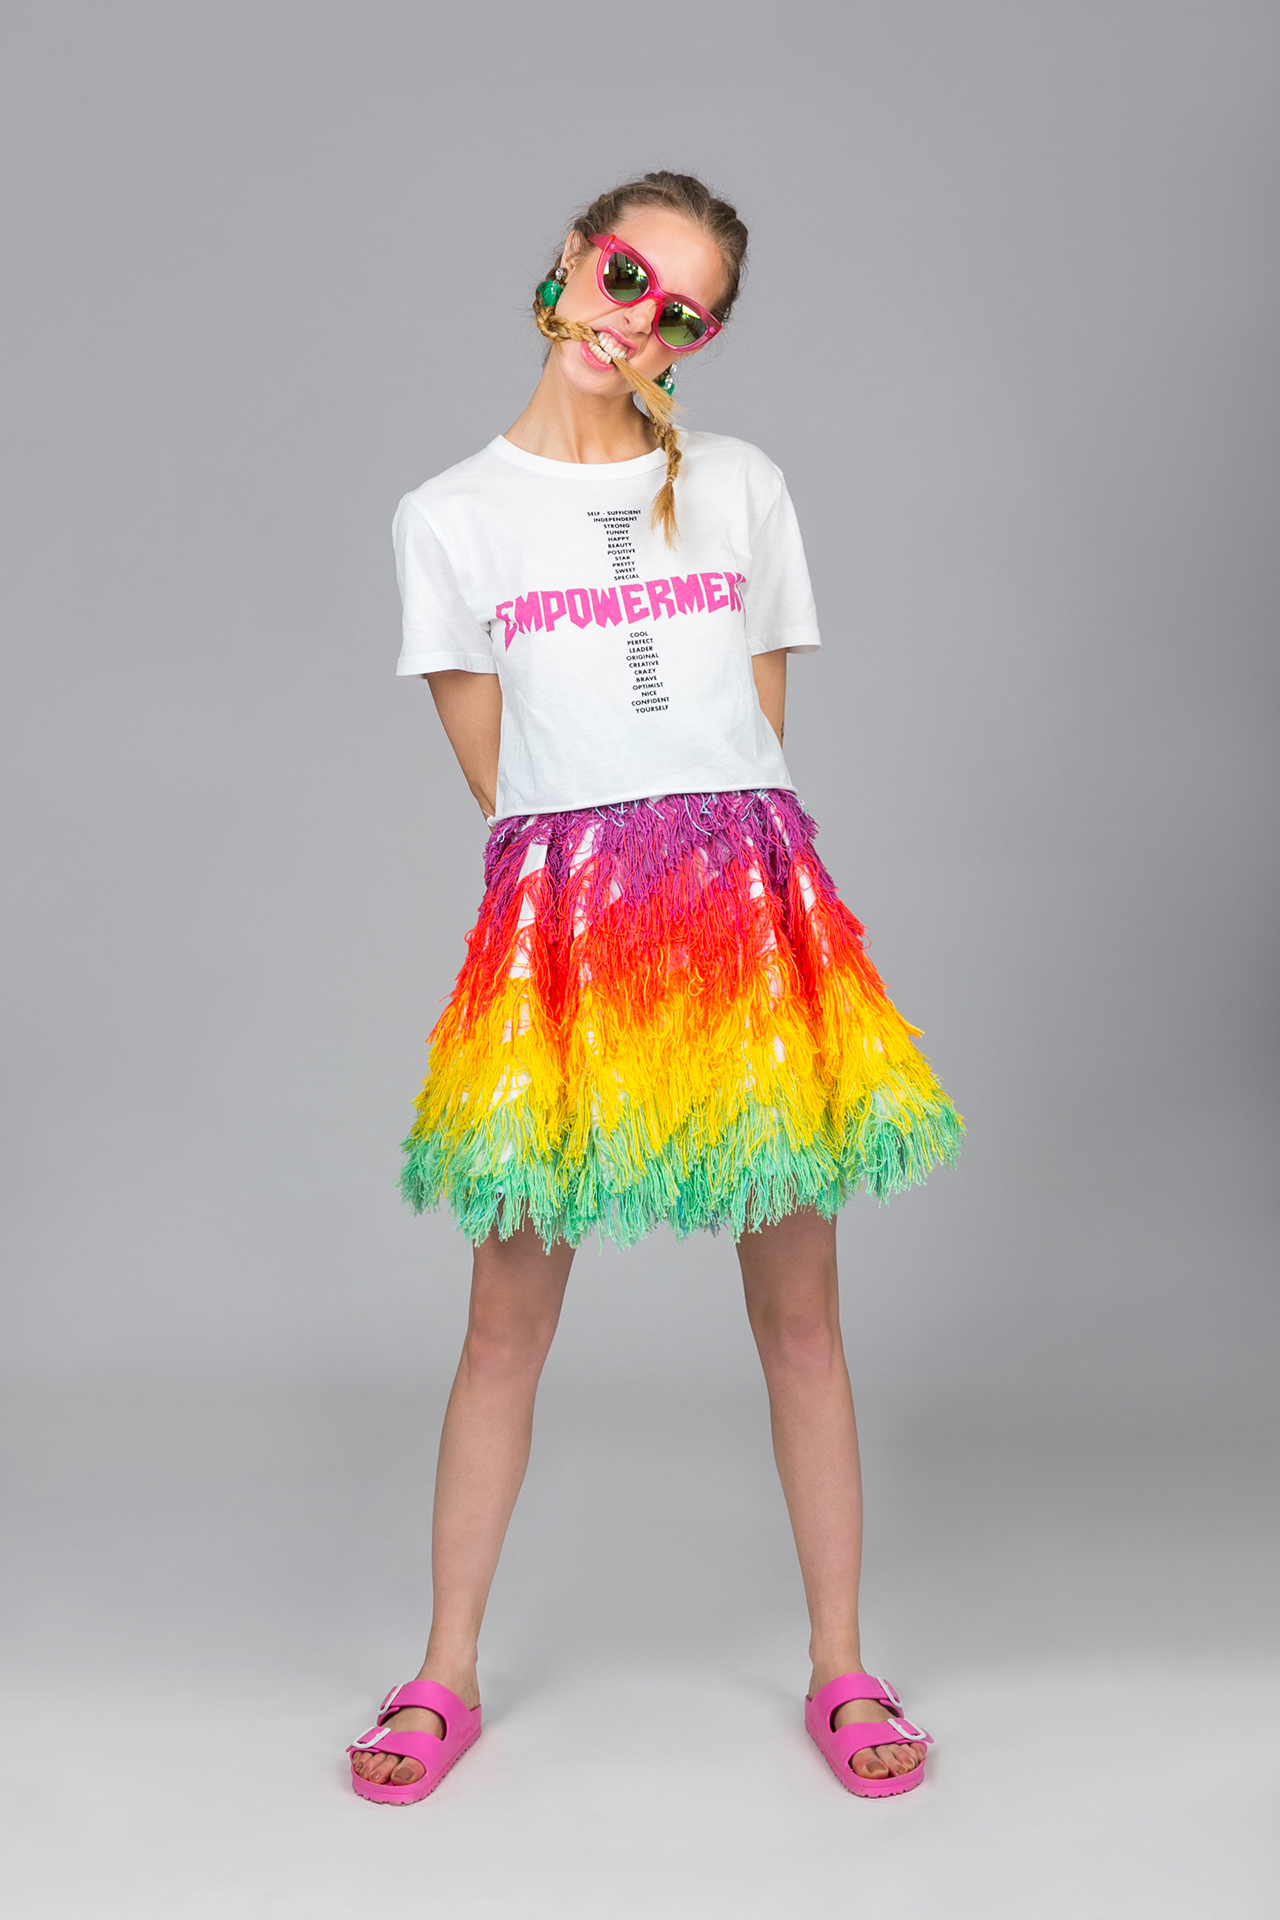 Loomed Rainbow Skirt - Sex On The Beach  Pcp Clothing-2918